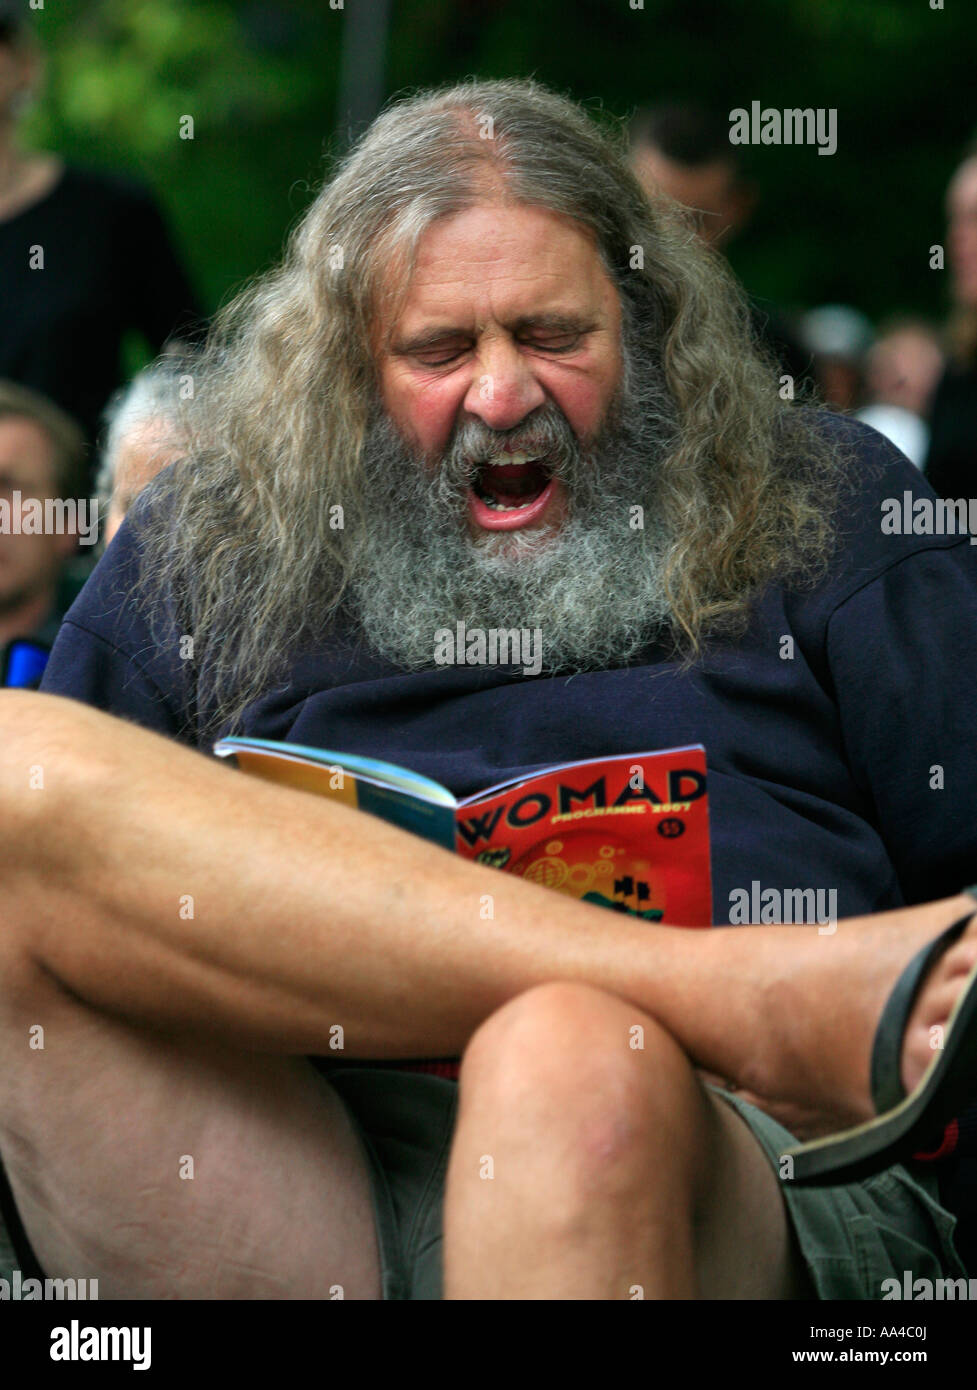 A big hairy bearded man yawning as though bored at a music concert in New  Zealand